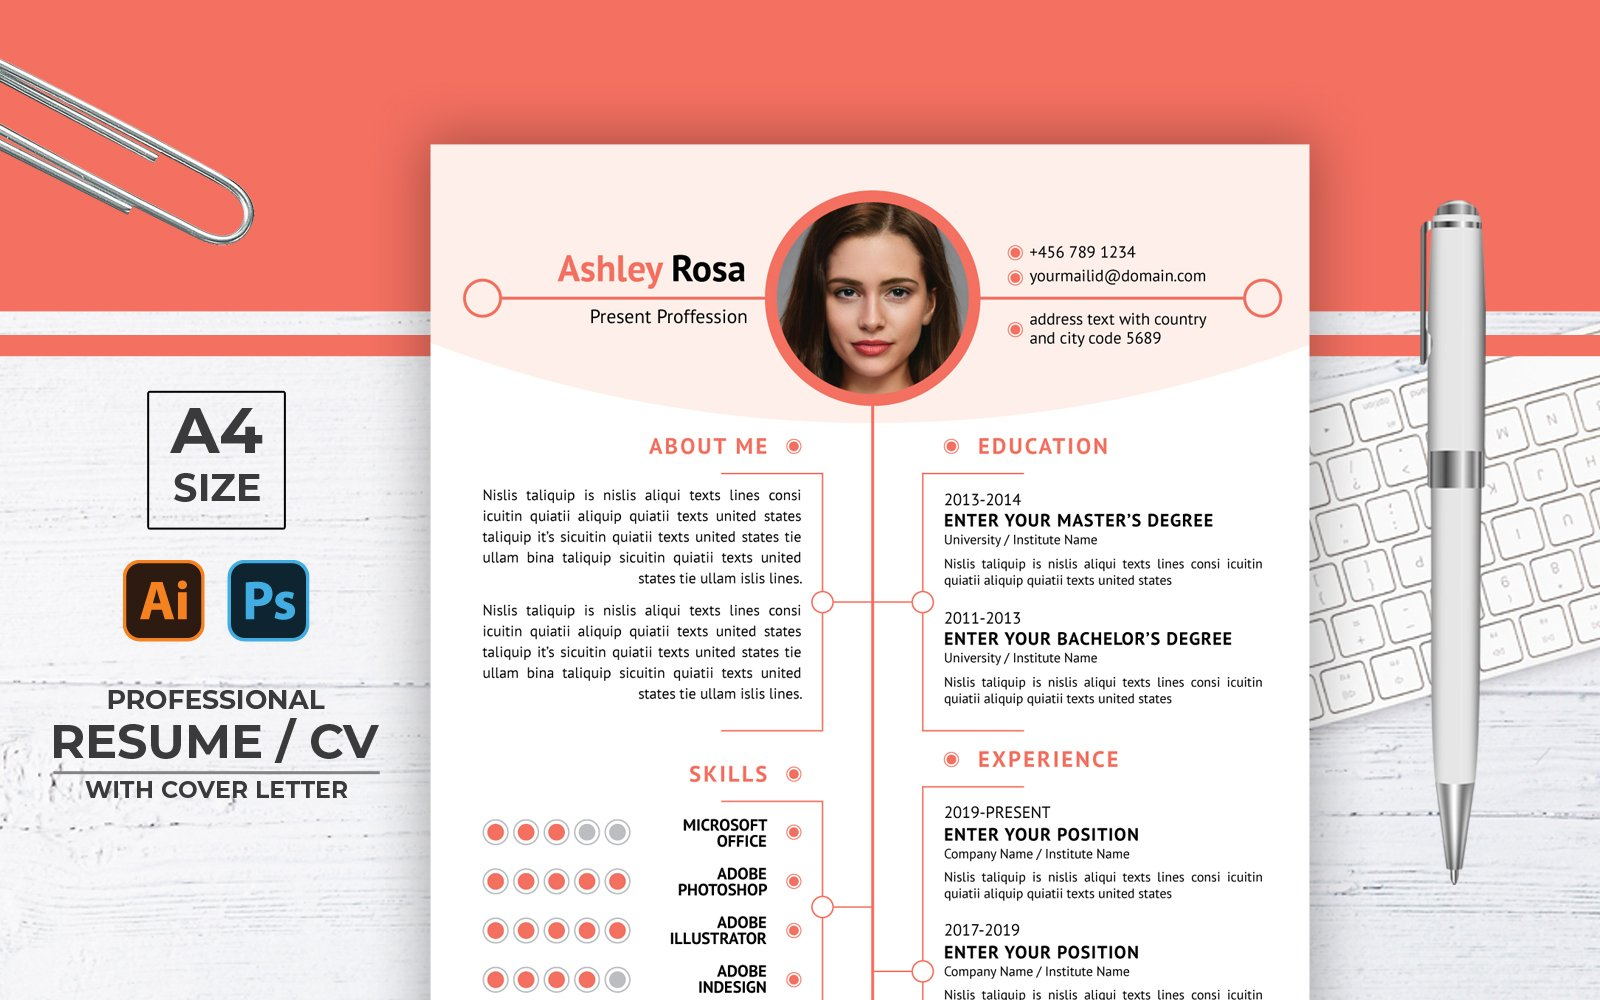 Ashley Rosa Creative CV Resume #123162